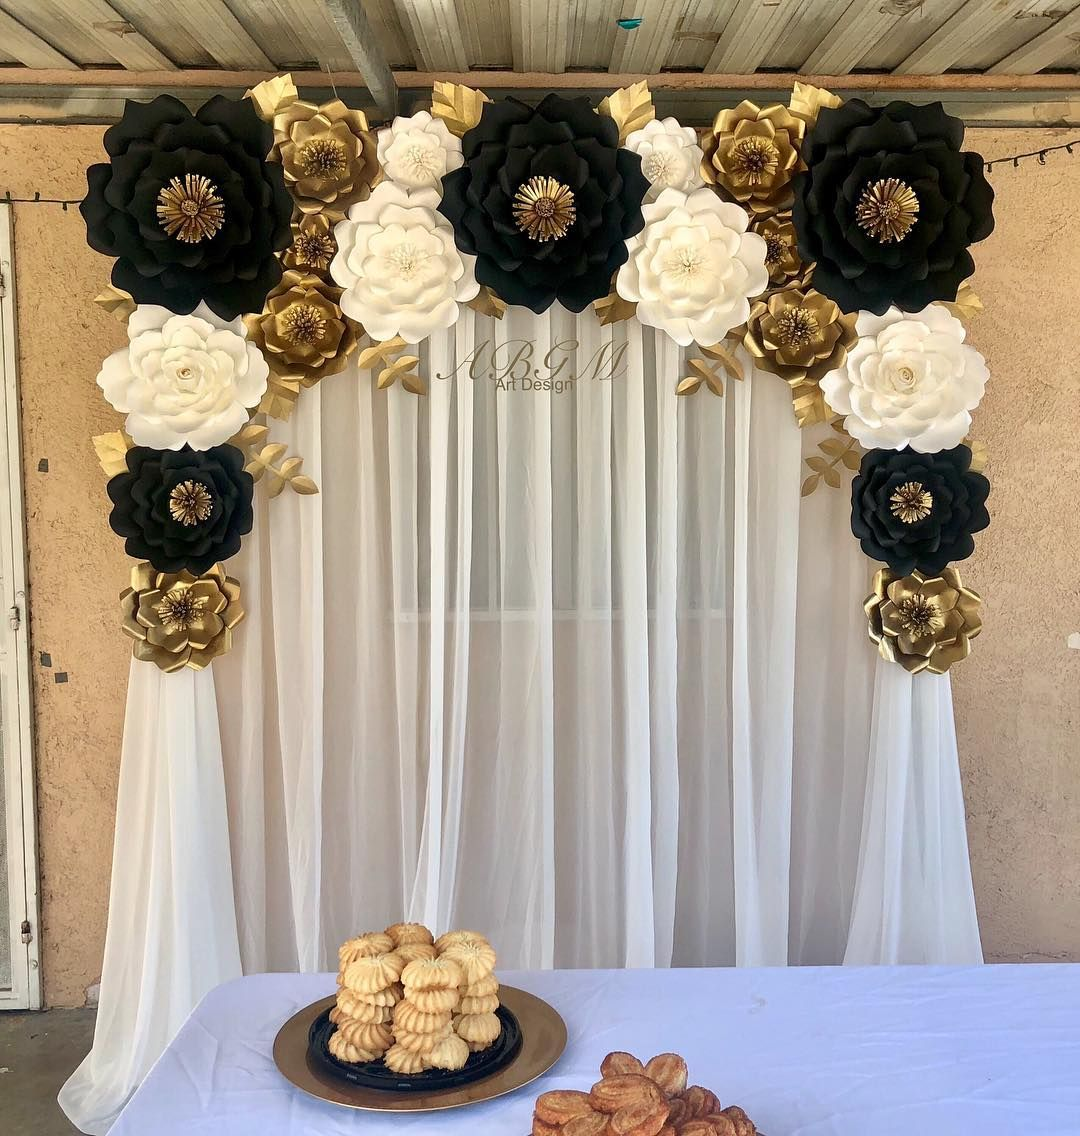 Black And Gold Wedding Decorations: Pin By Marian Van Geest On Pin Wheels